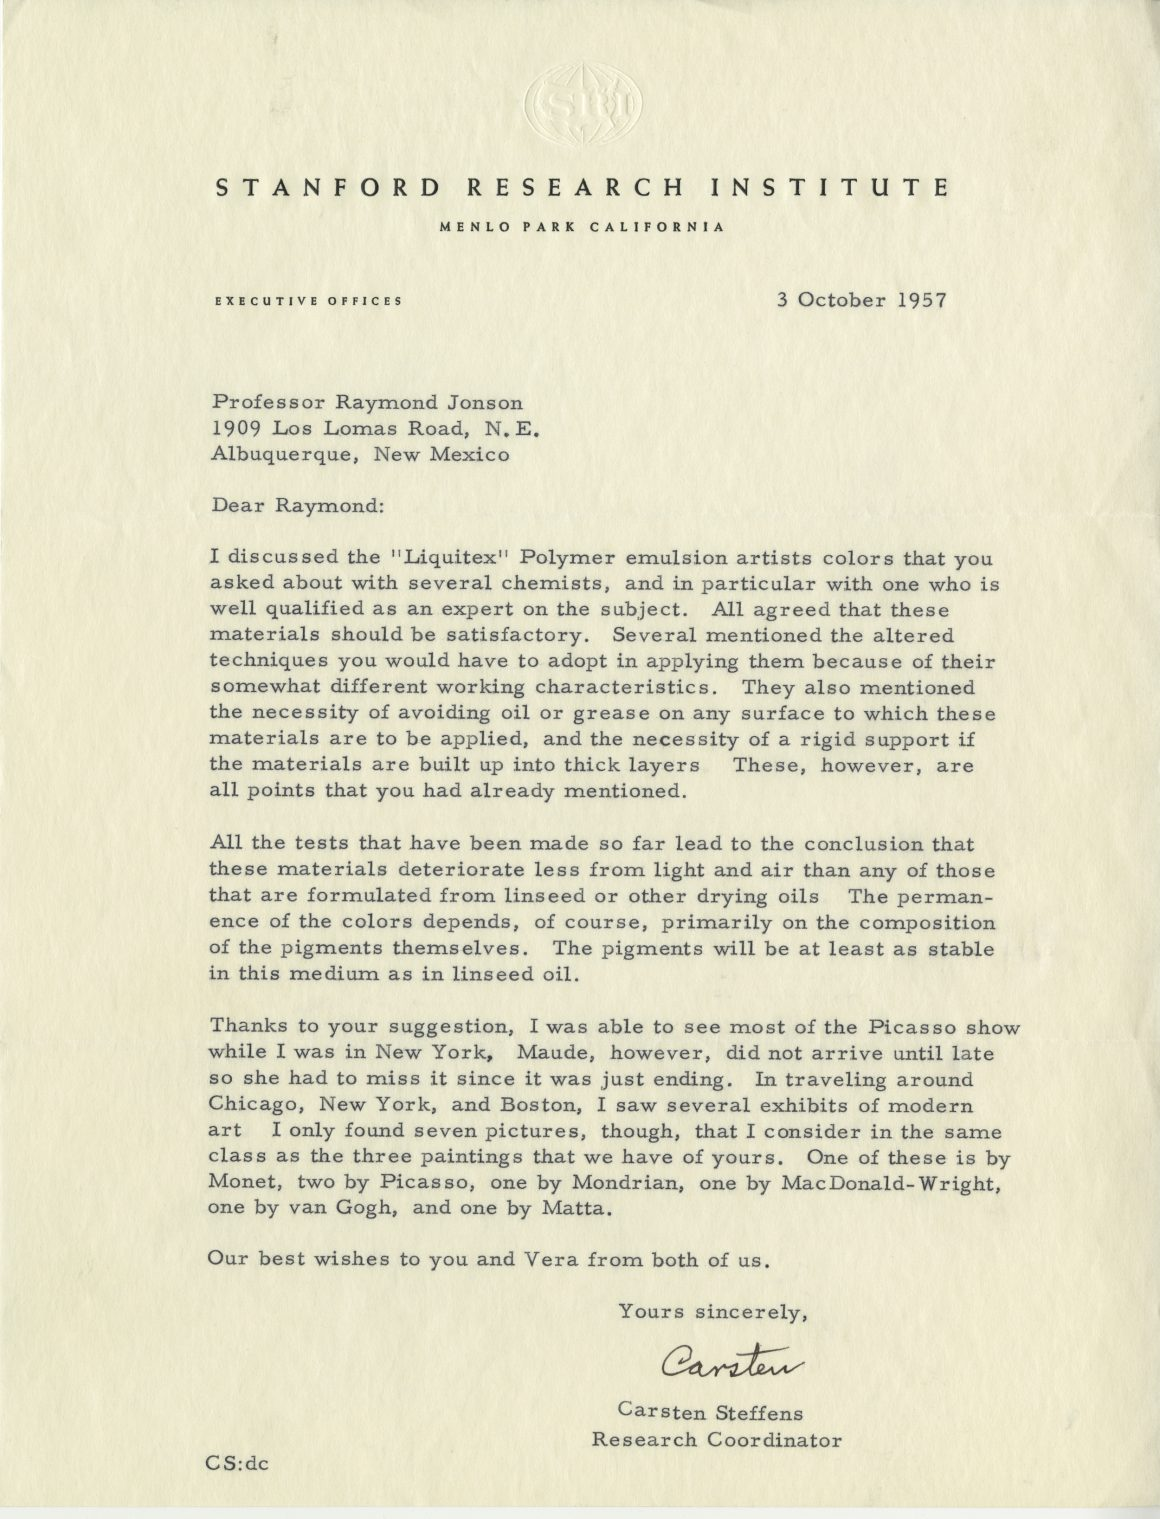 """Scan of a letter from Carsten Steffens, Research Coordinator at Stanford Research Institute to Raymond Jonson in 1957 about """"Liquitex"""" Polymer emulsion artists colors."""